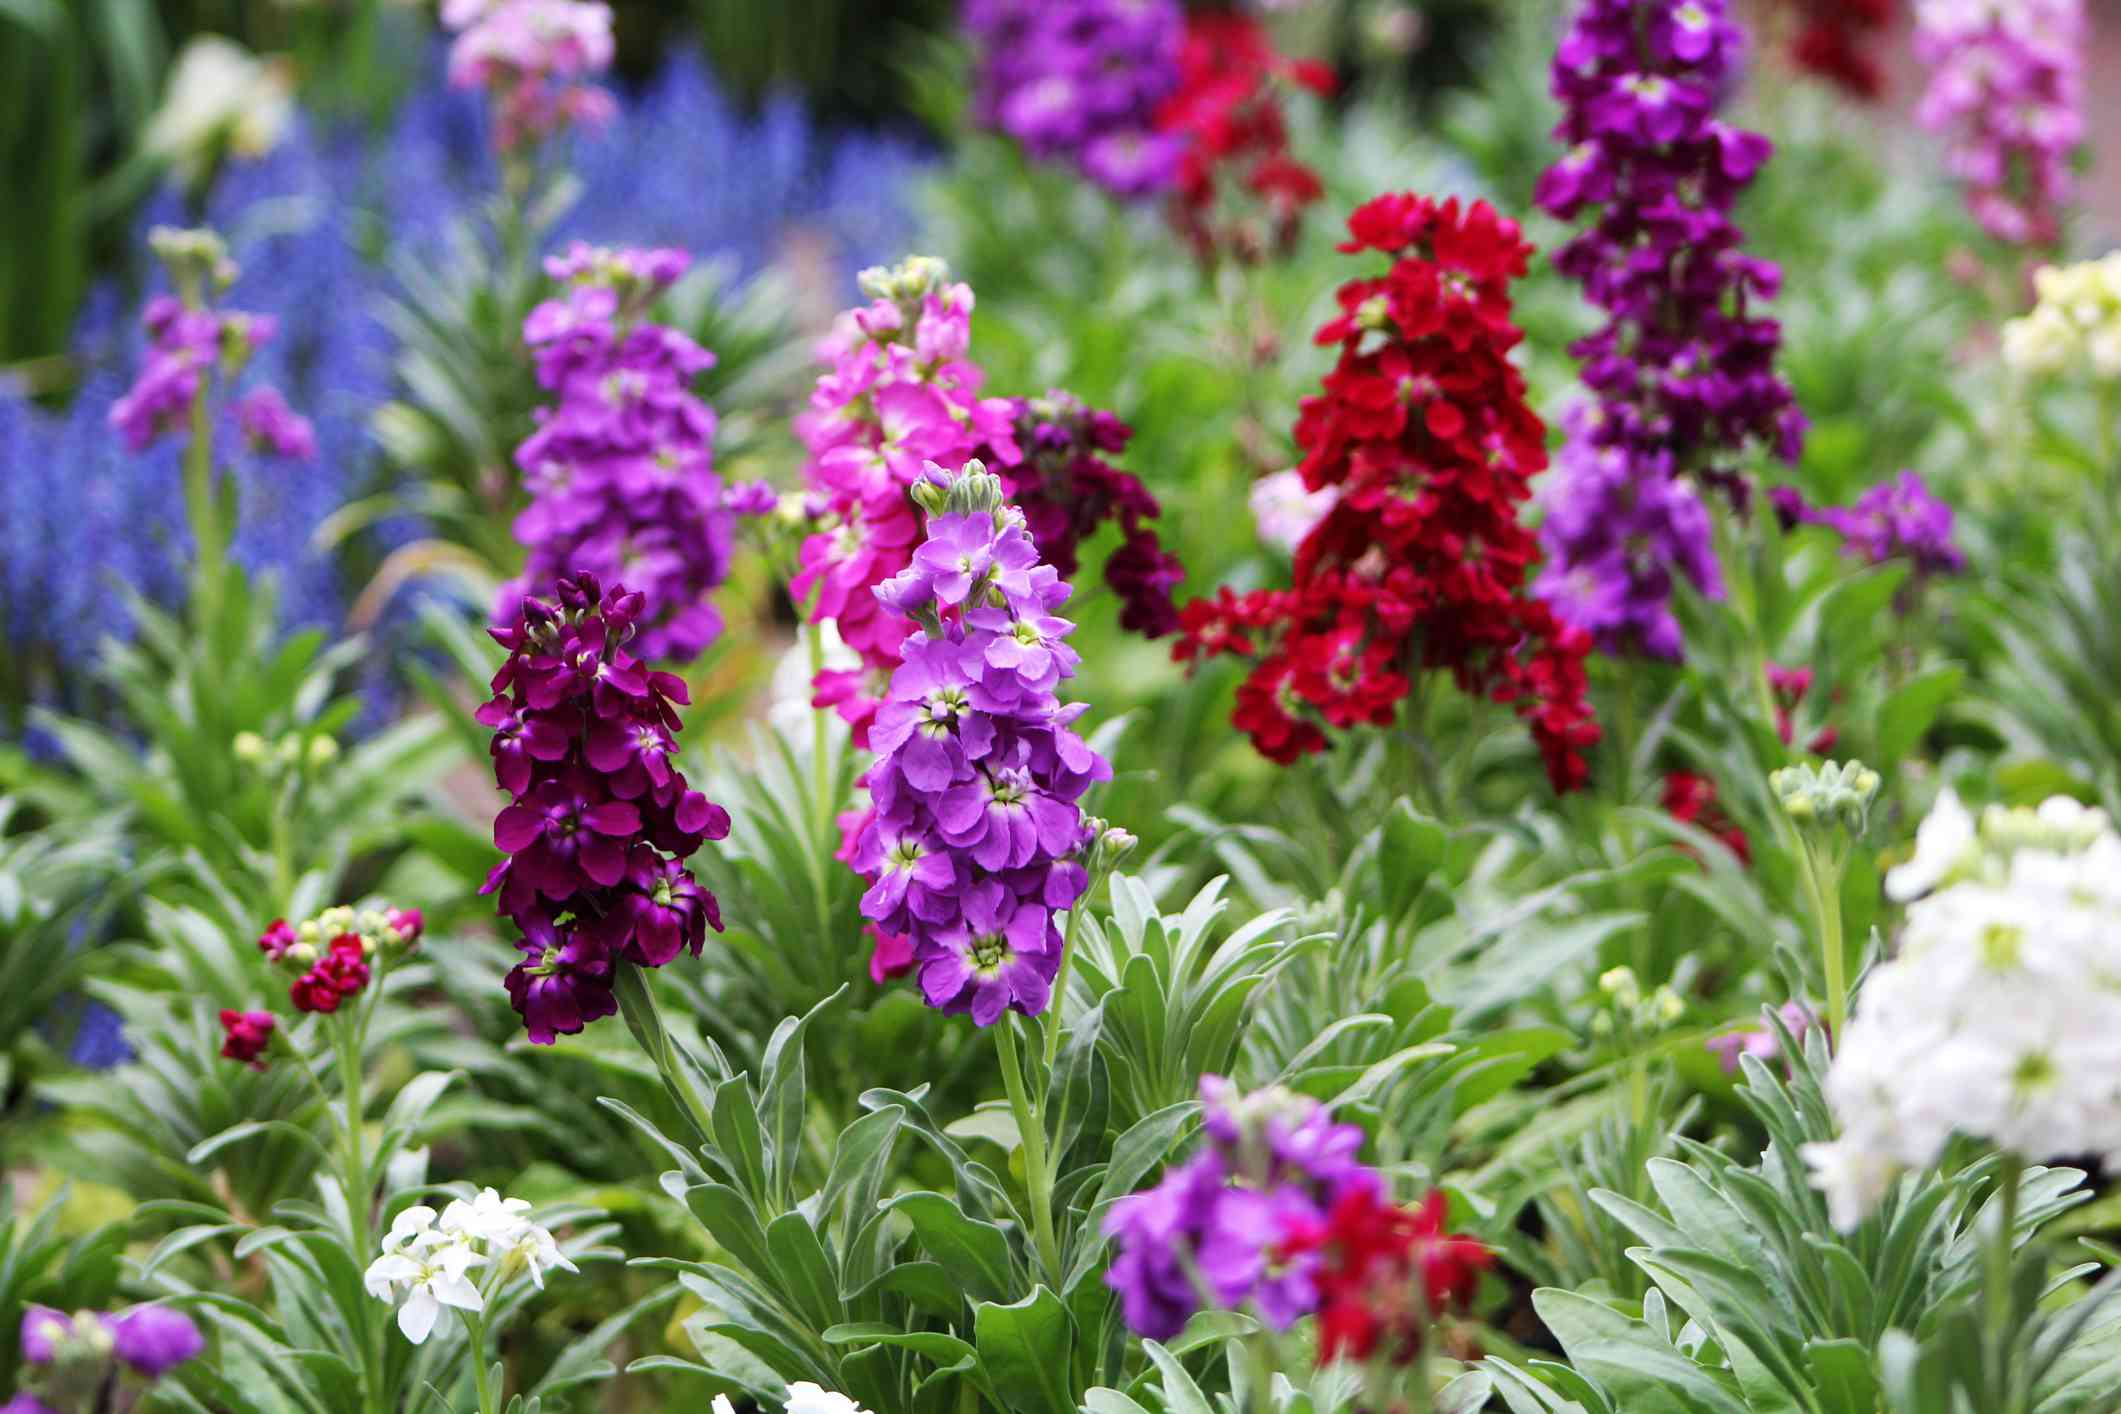 pink, purple, red, and white flowering stock blooms with long green leaves in garden